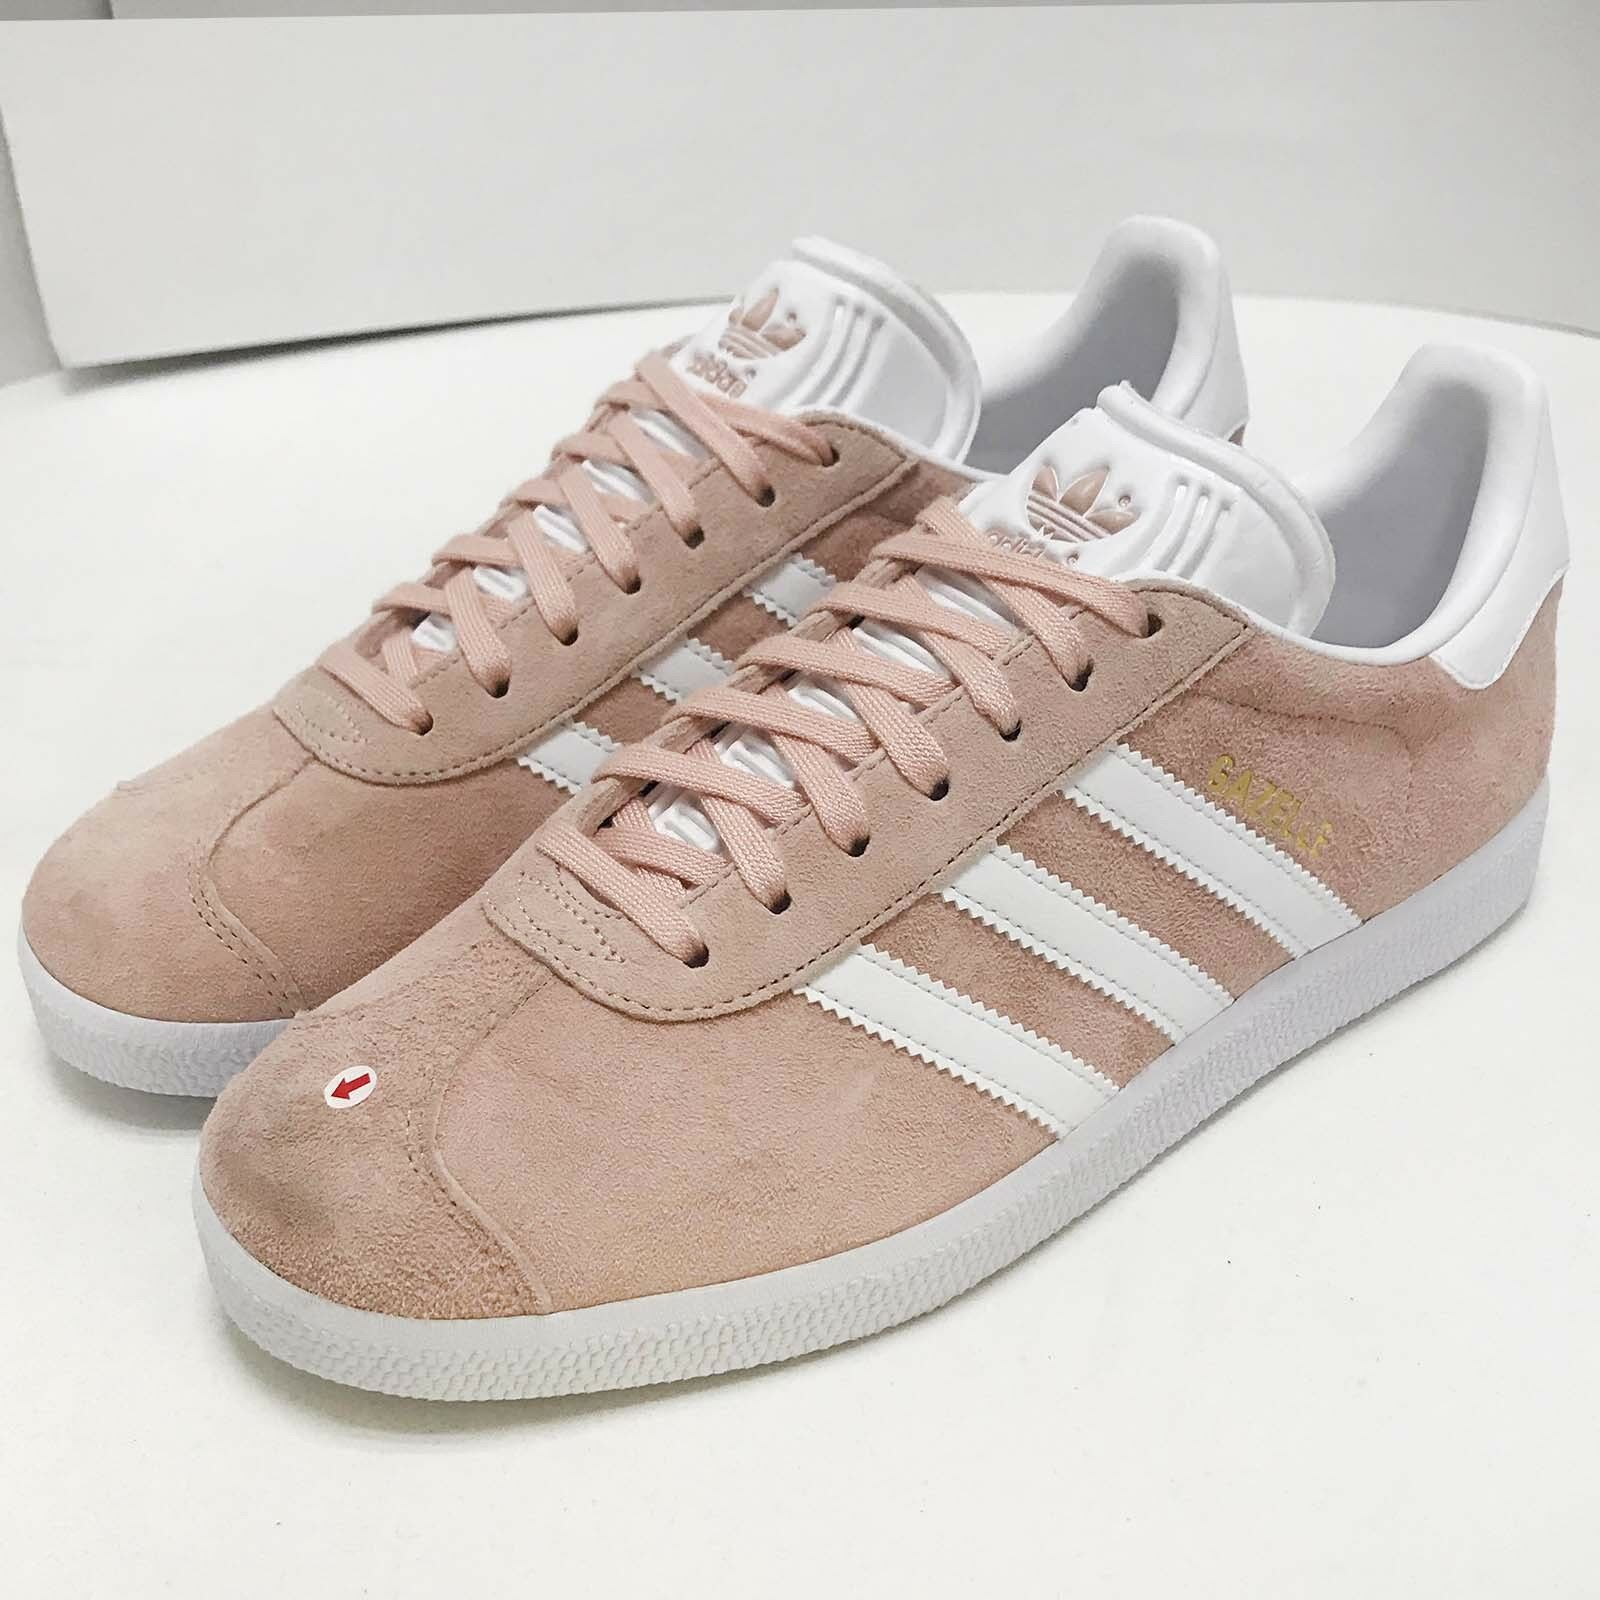 Adidas Originals Gazelle W Left Foot with disloration kvinnor with Box BA9600